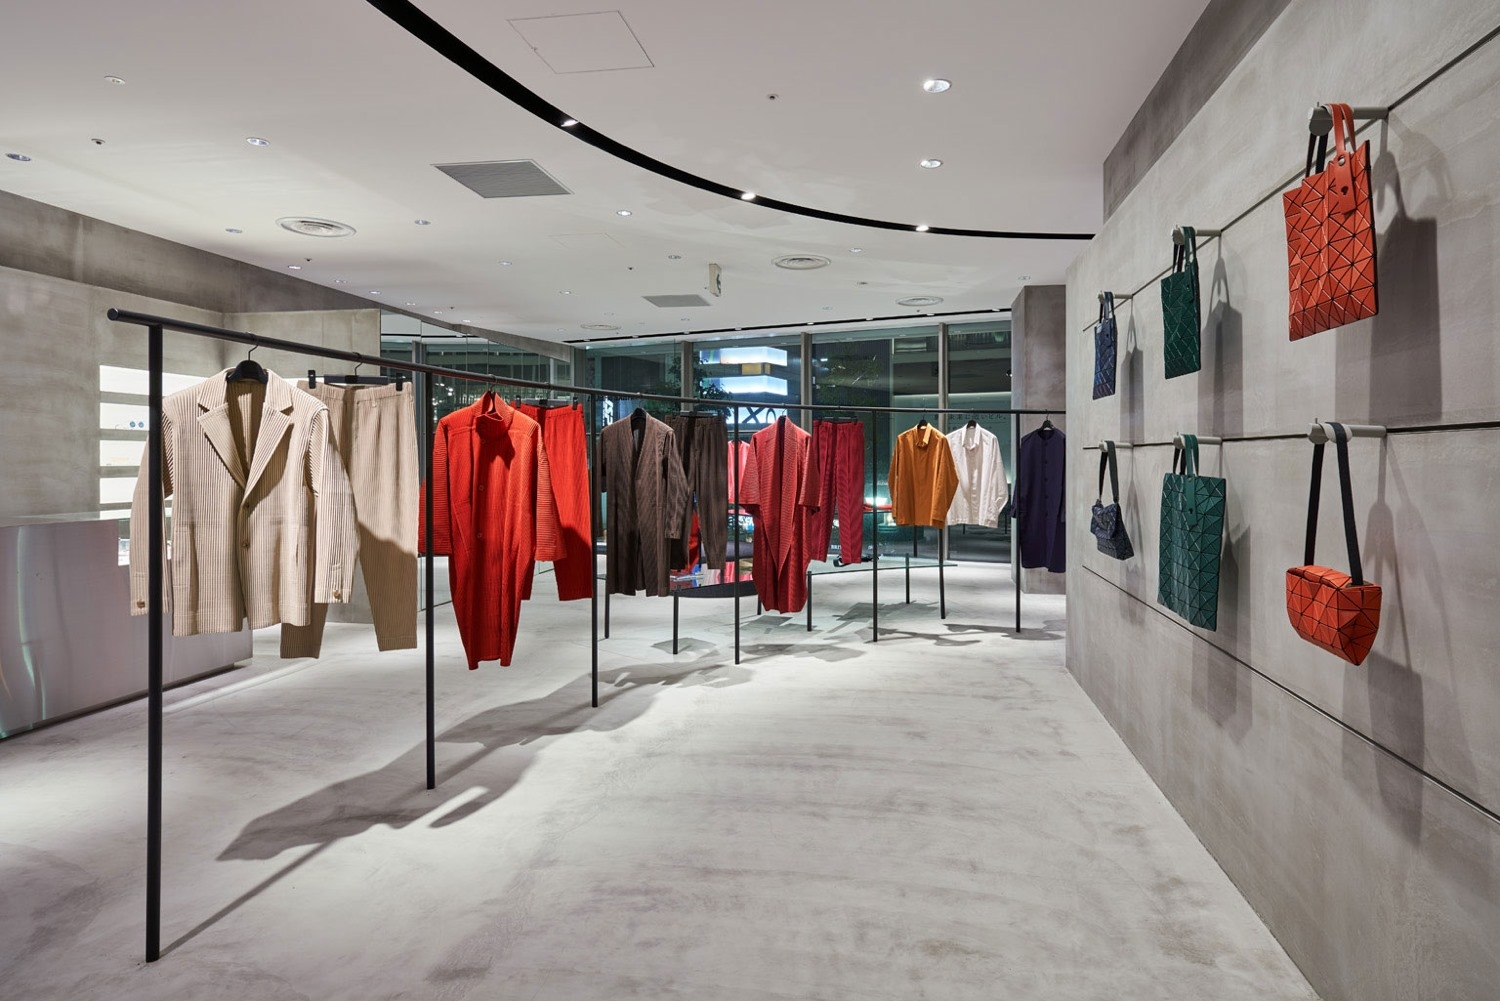 ISSEY MIYAKE openes new flagship store in Tokyo